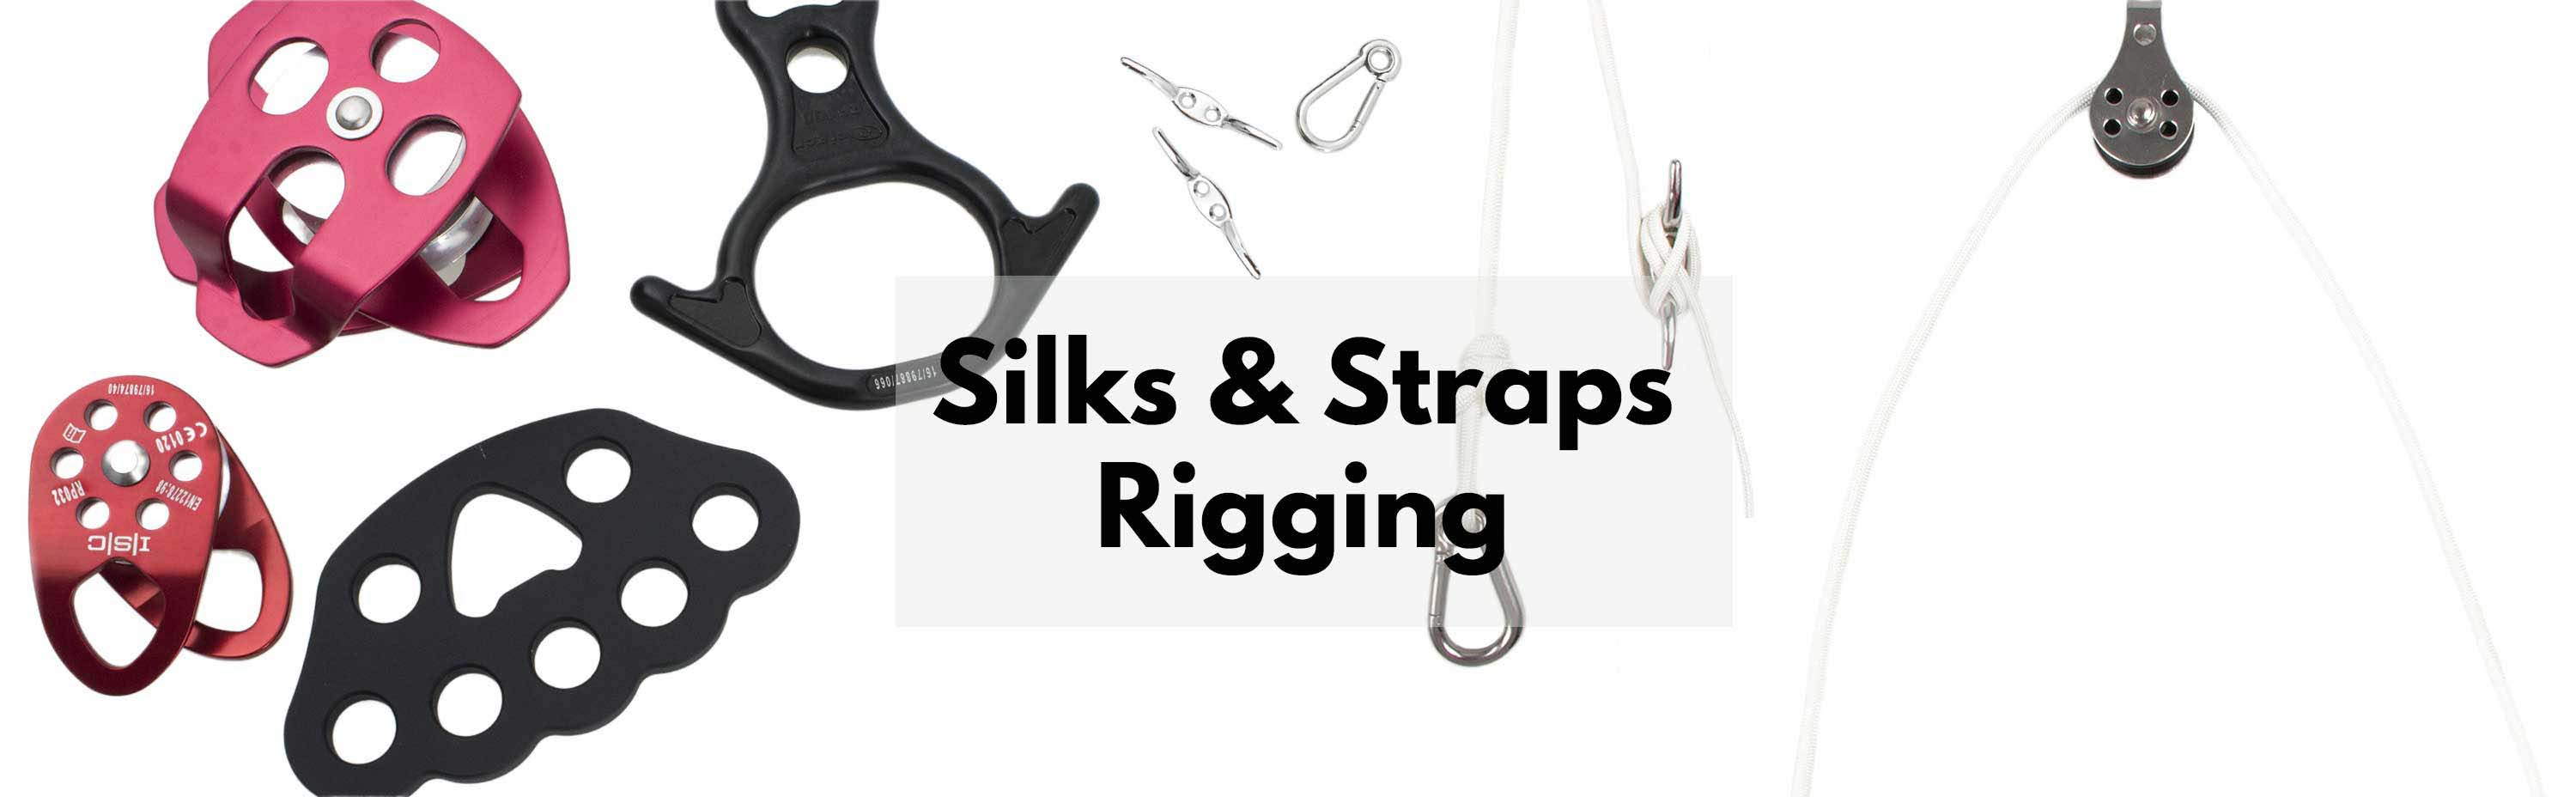 Silks and Straps Rigging